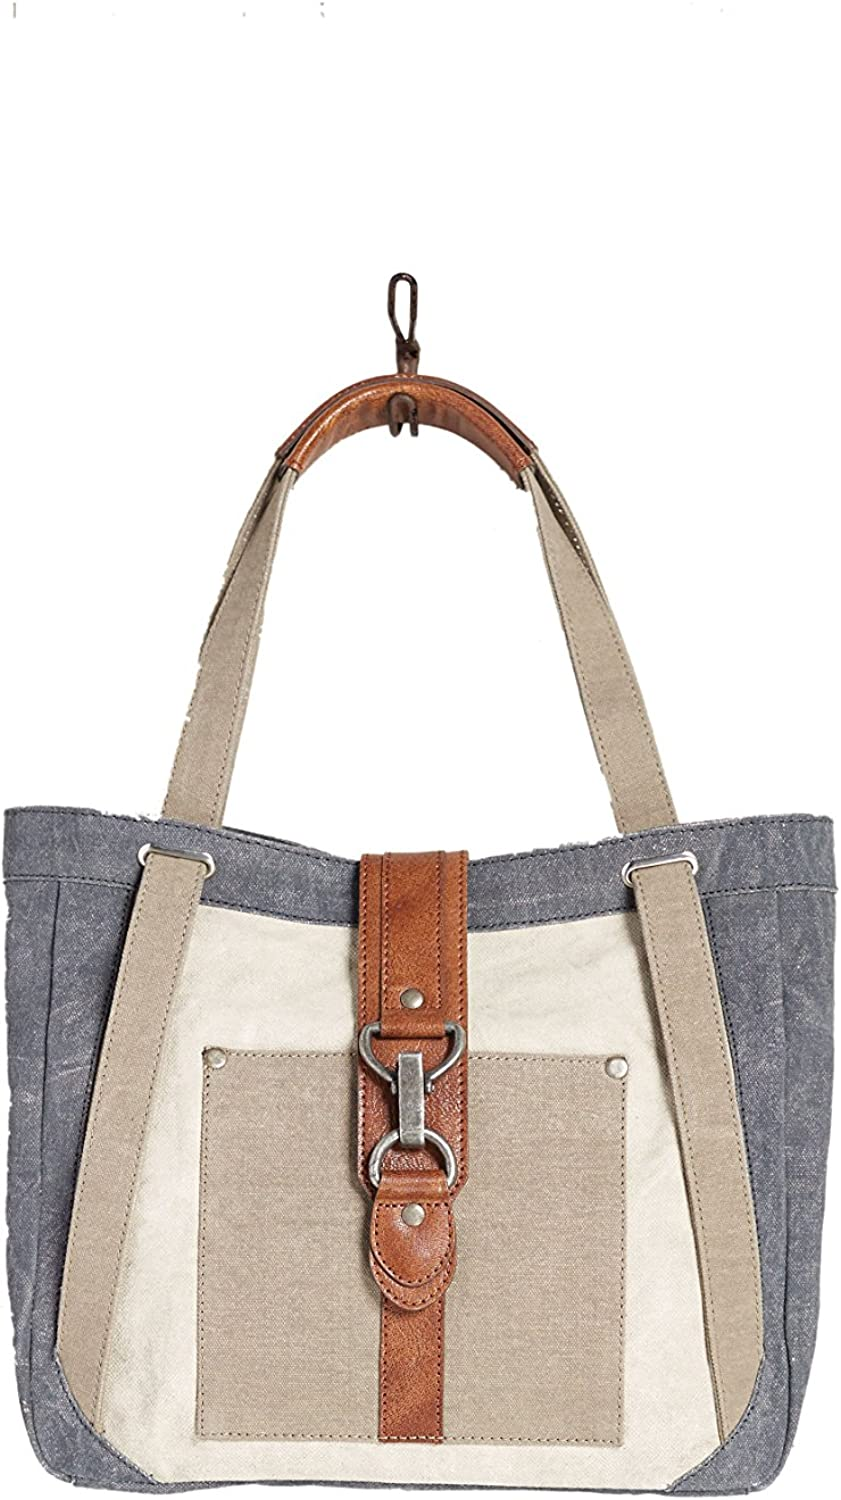 Mona B. Nora Sky Blue Upcycled Canvas Shoulder Bag and Finley Crossbody with Vegan Leather Trim MD-5905